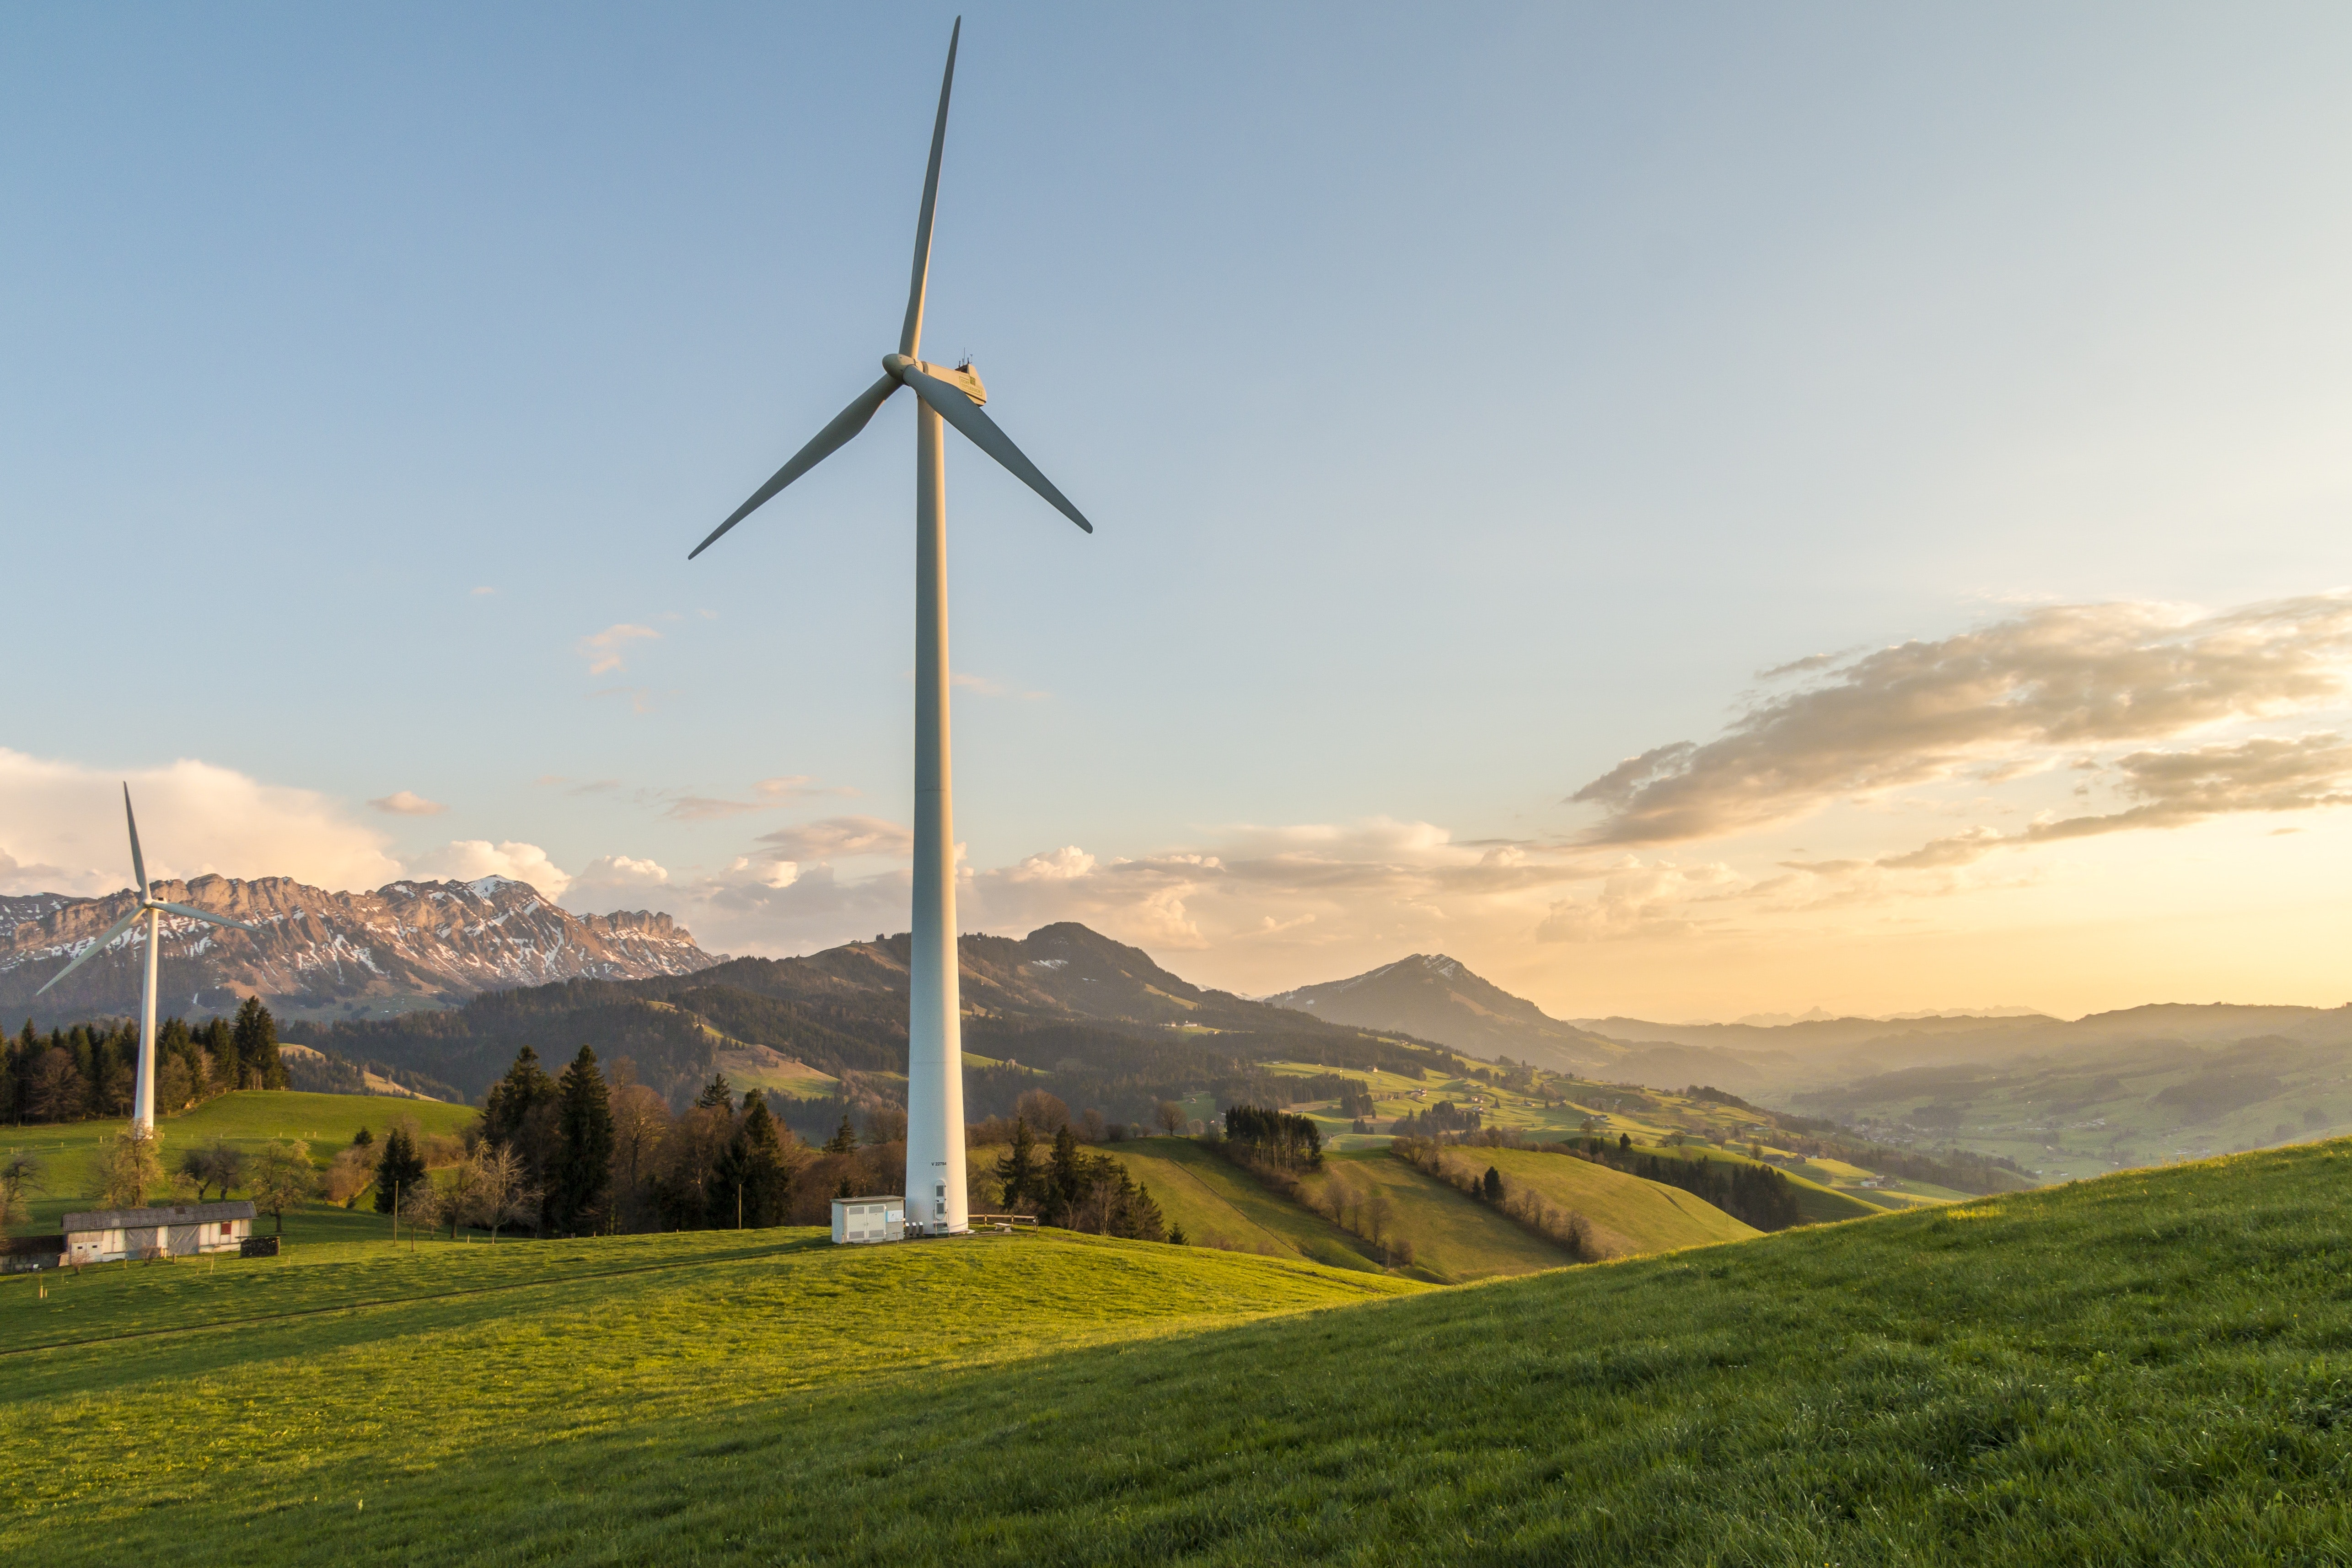 Wind turbine and mountains